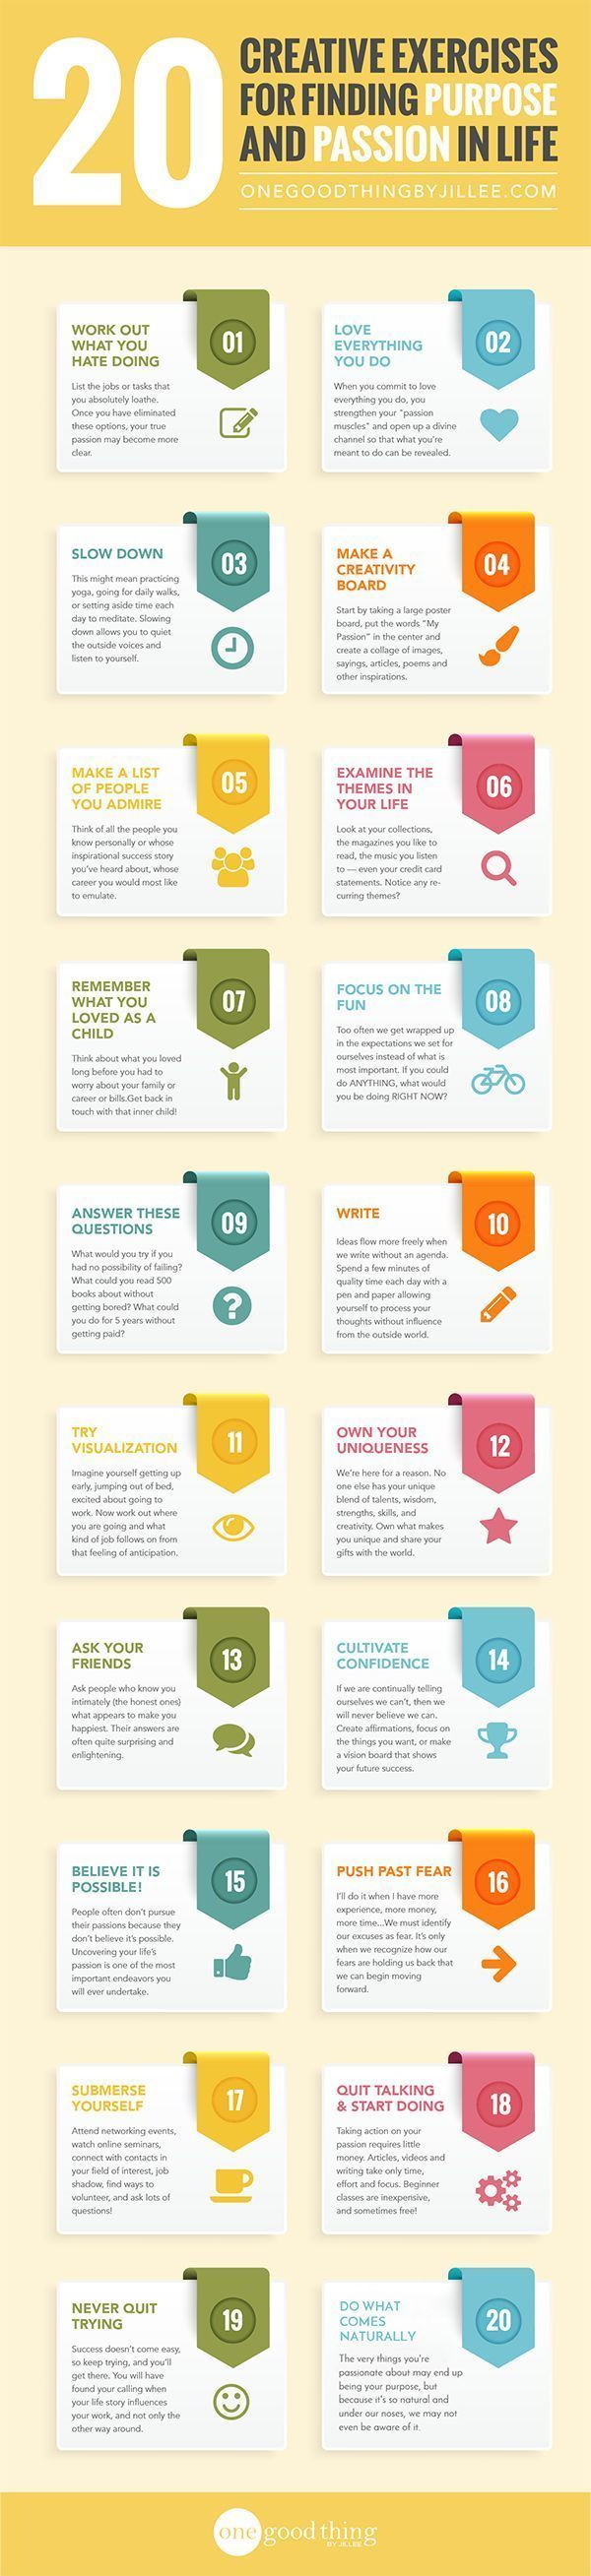 Psychology : 20 Creative Exercises for Finding Purpose and Passion in Life!